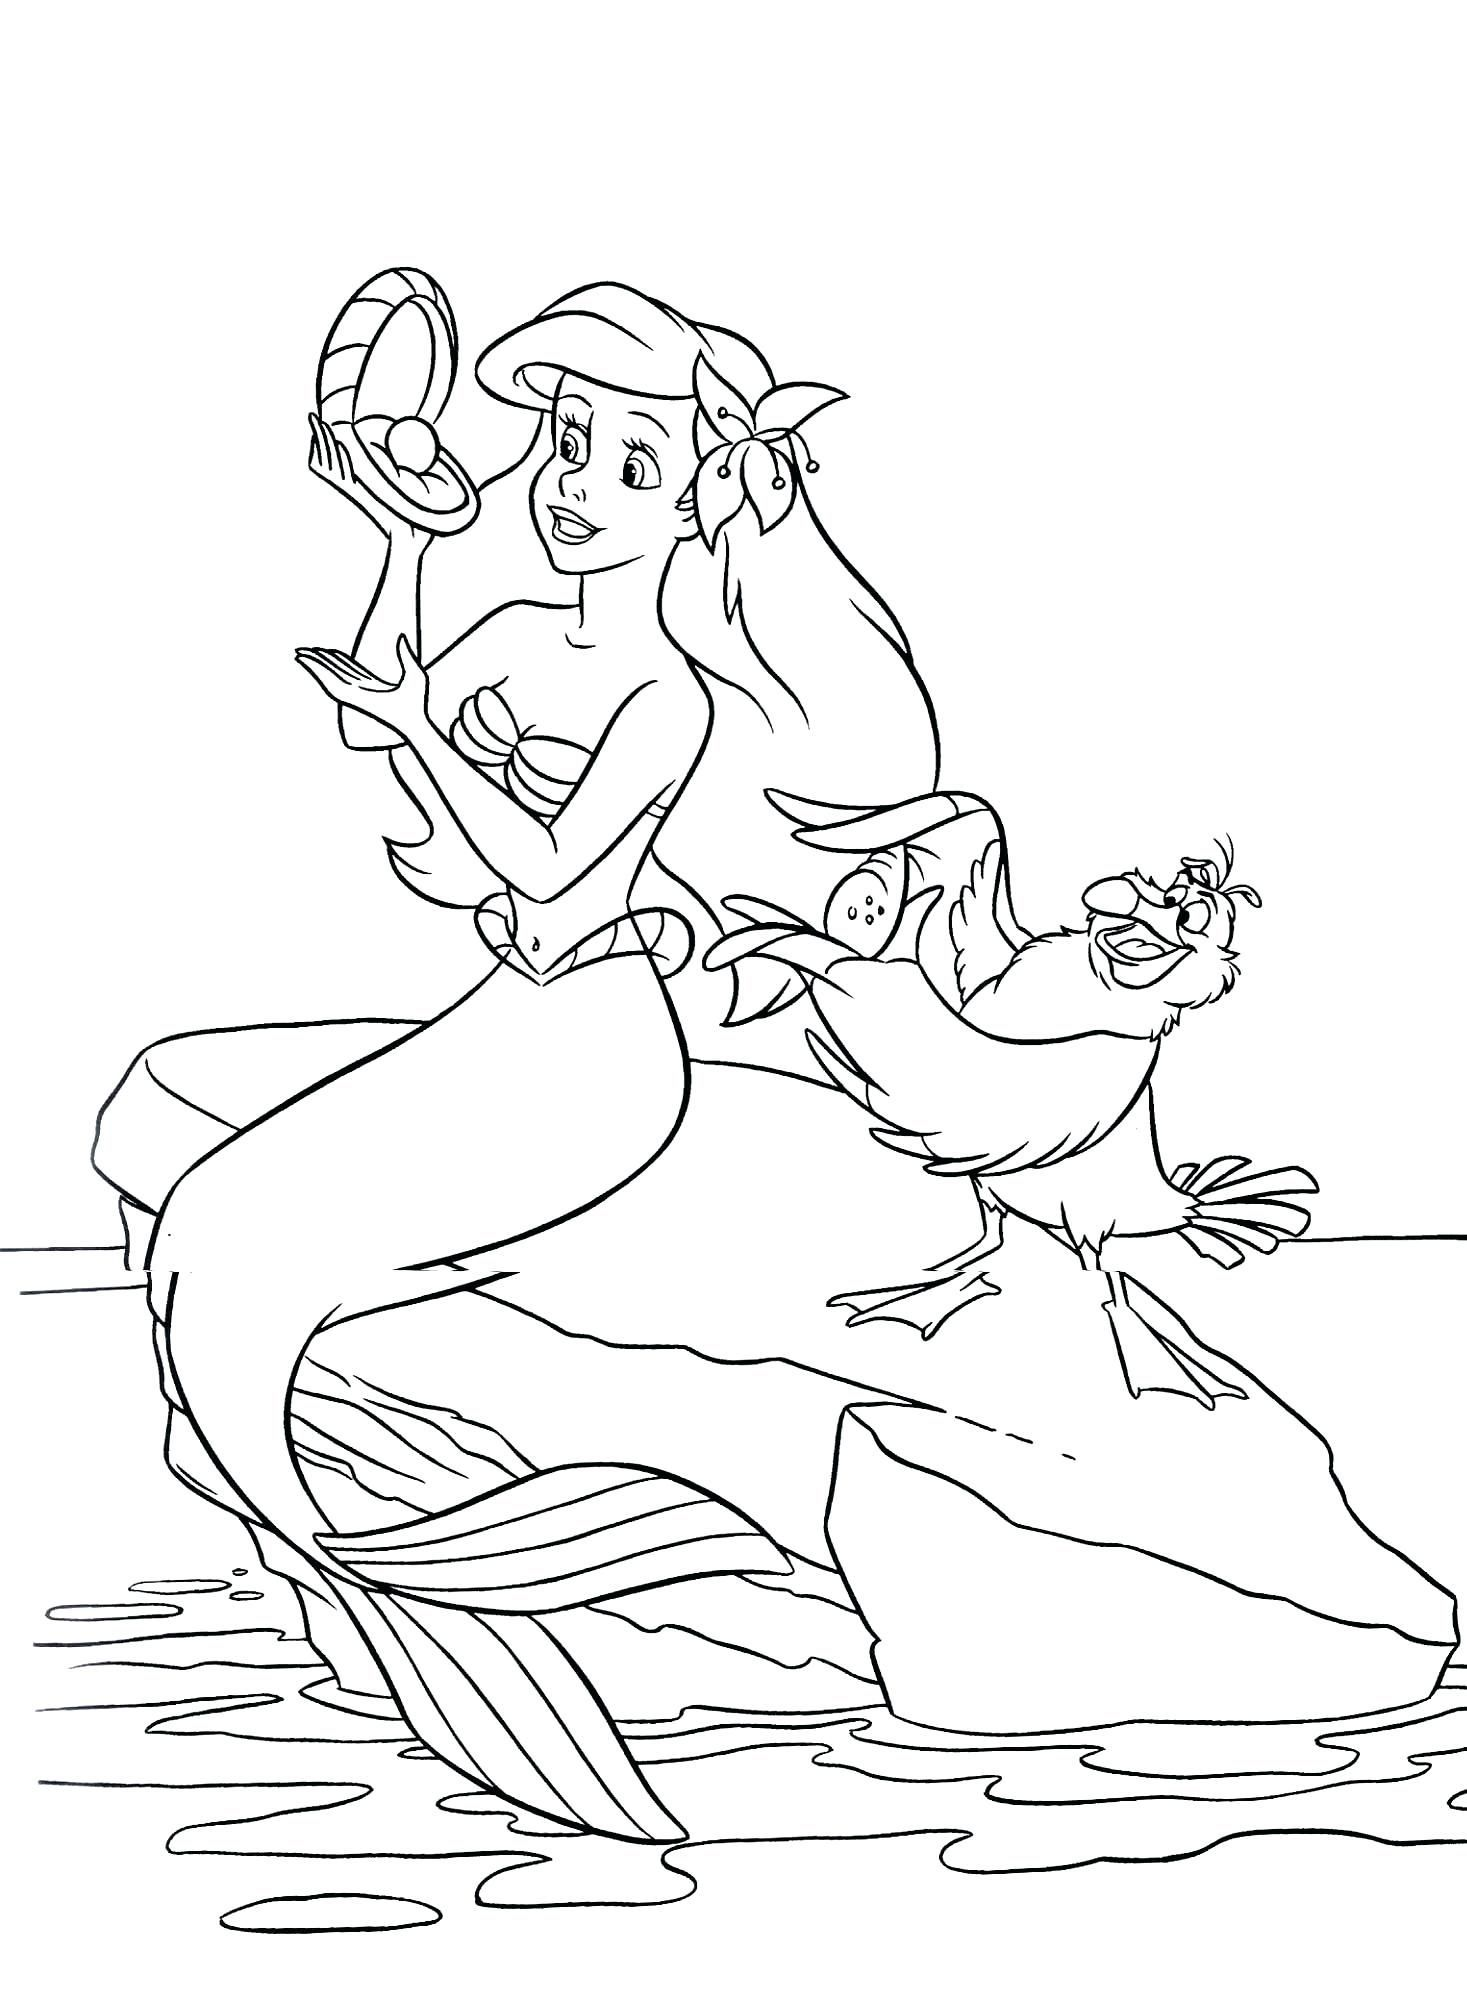 Ariel Mermaid Coloring Pages Color Little Free Easy Boat Suit Rainbow With Clouds Page Sports In 2020 Ariel Coloring Pages Mermaid Coloring Pages Mermaid Coloring Book [ 2000 x 1467 Pixel ]